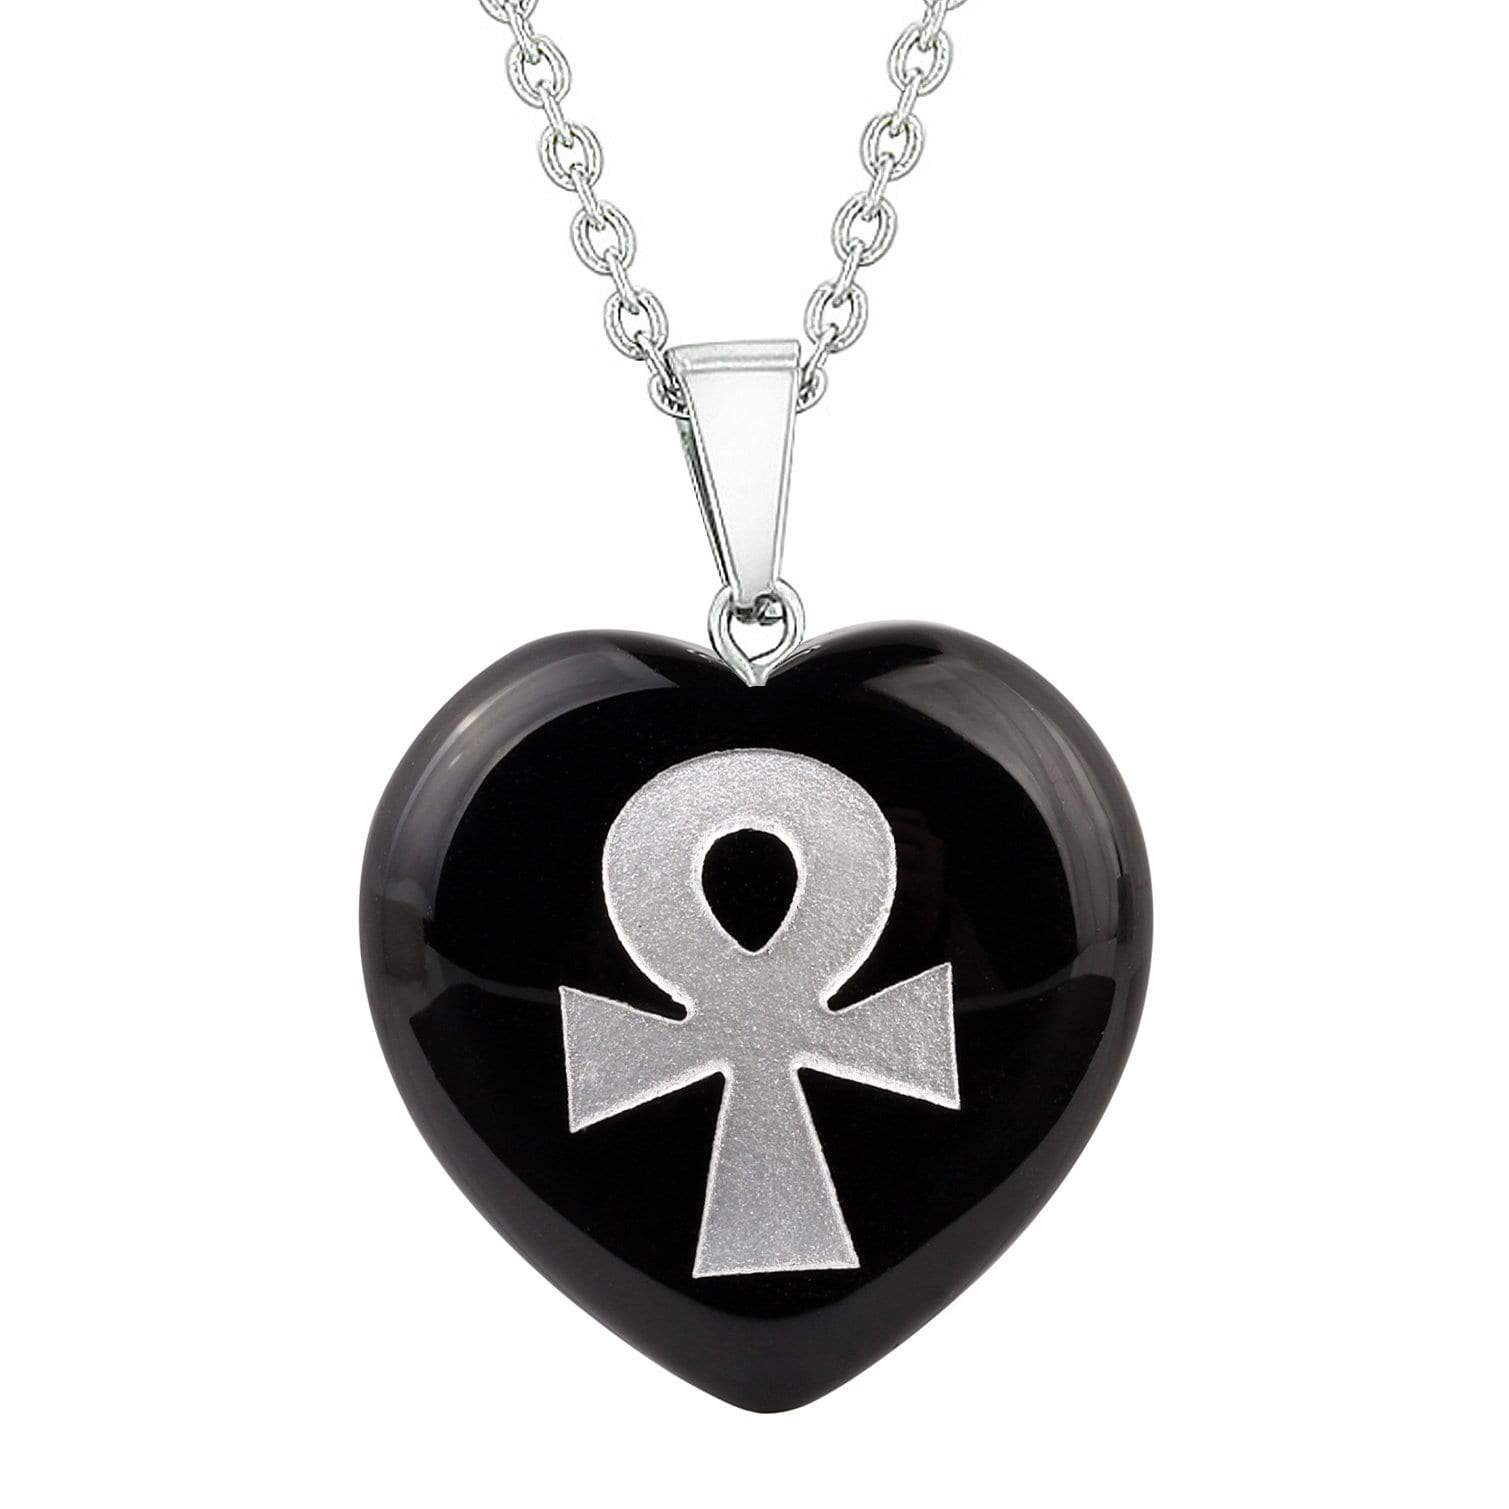 Amulet Ankh Egyptian Powers of Life Protection Energy Black Agate Puffy Heart Pendant Necklace